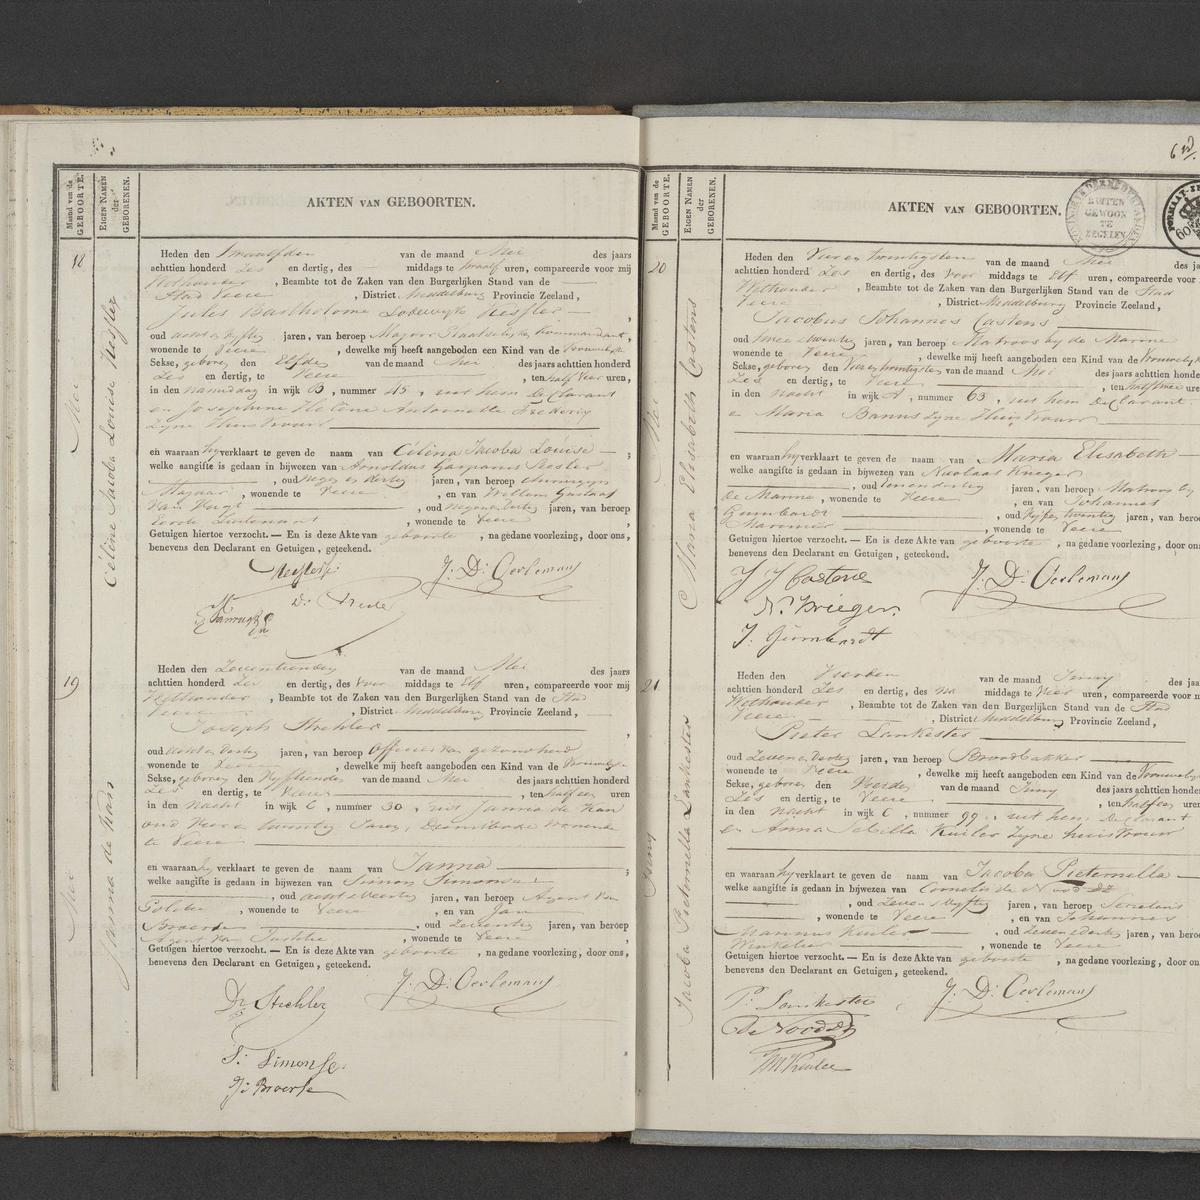 Civil registry of births, Veere, 1836, records 18-21